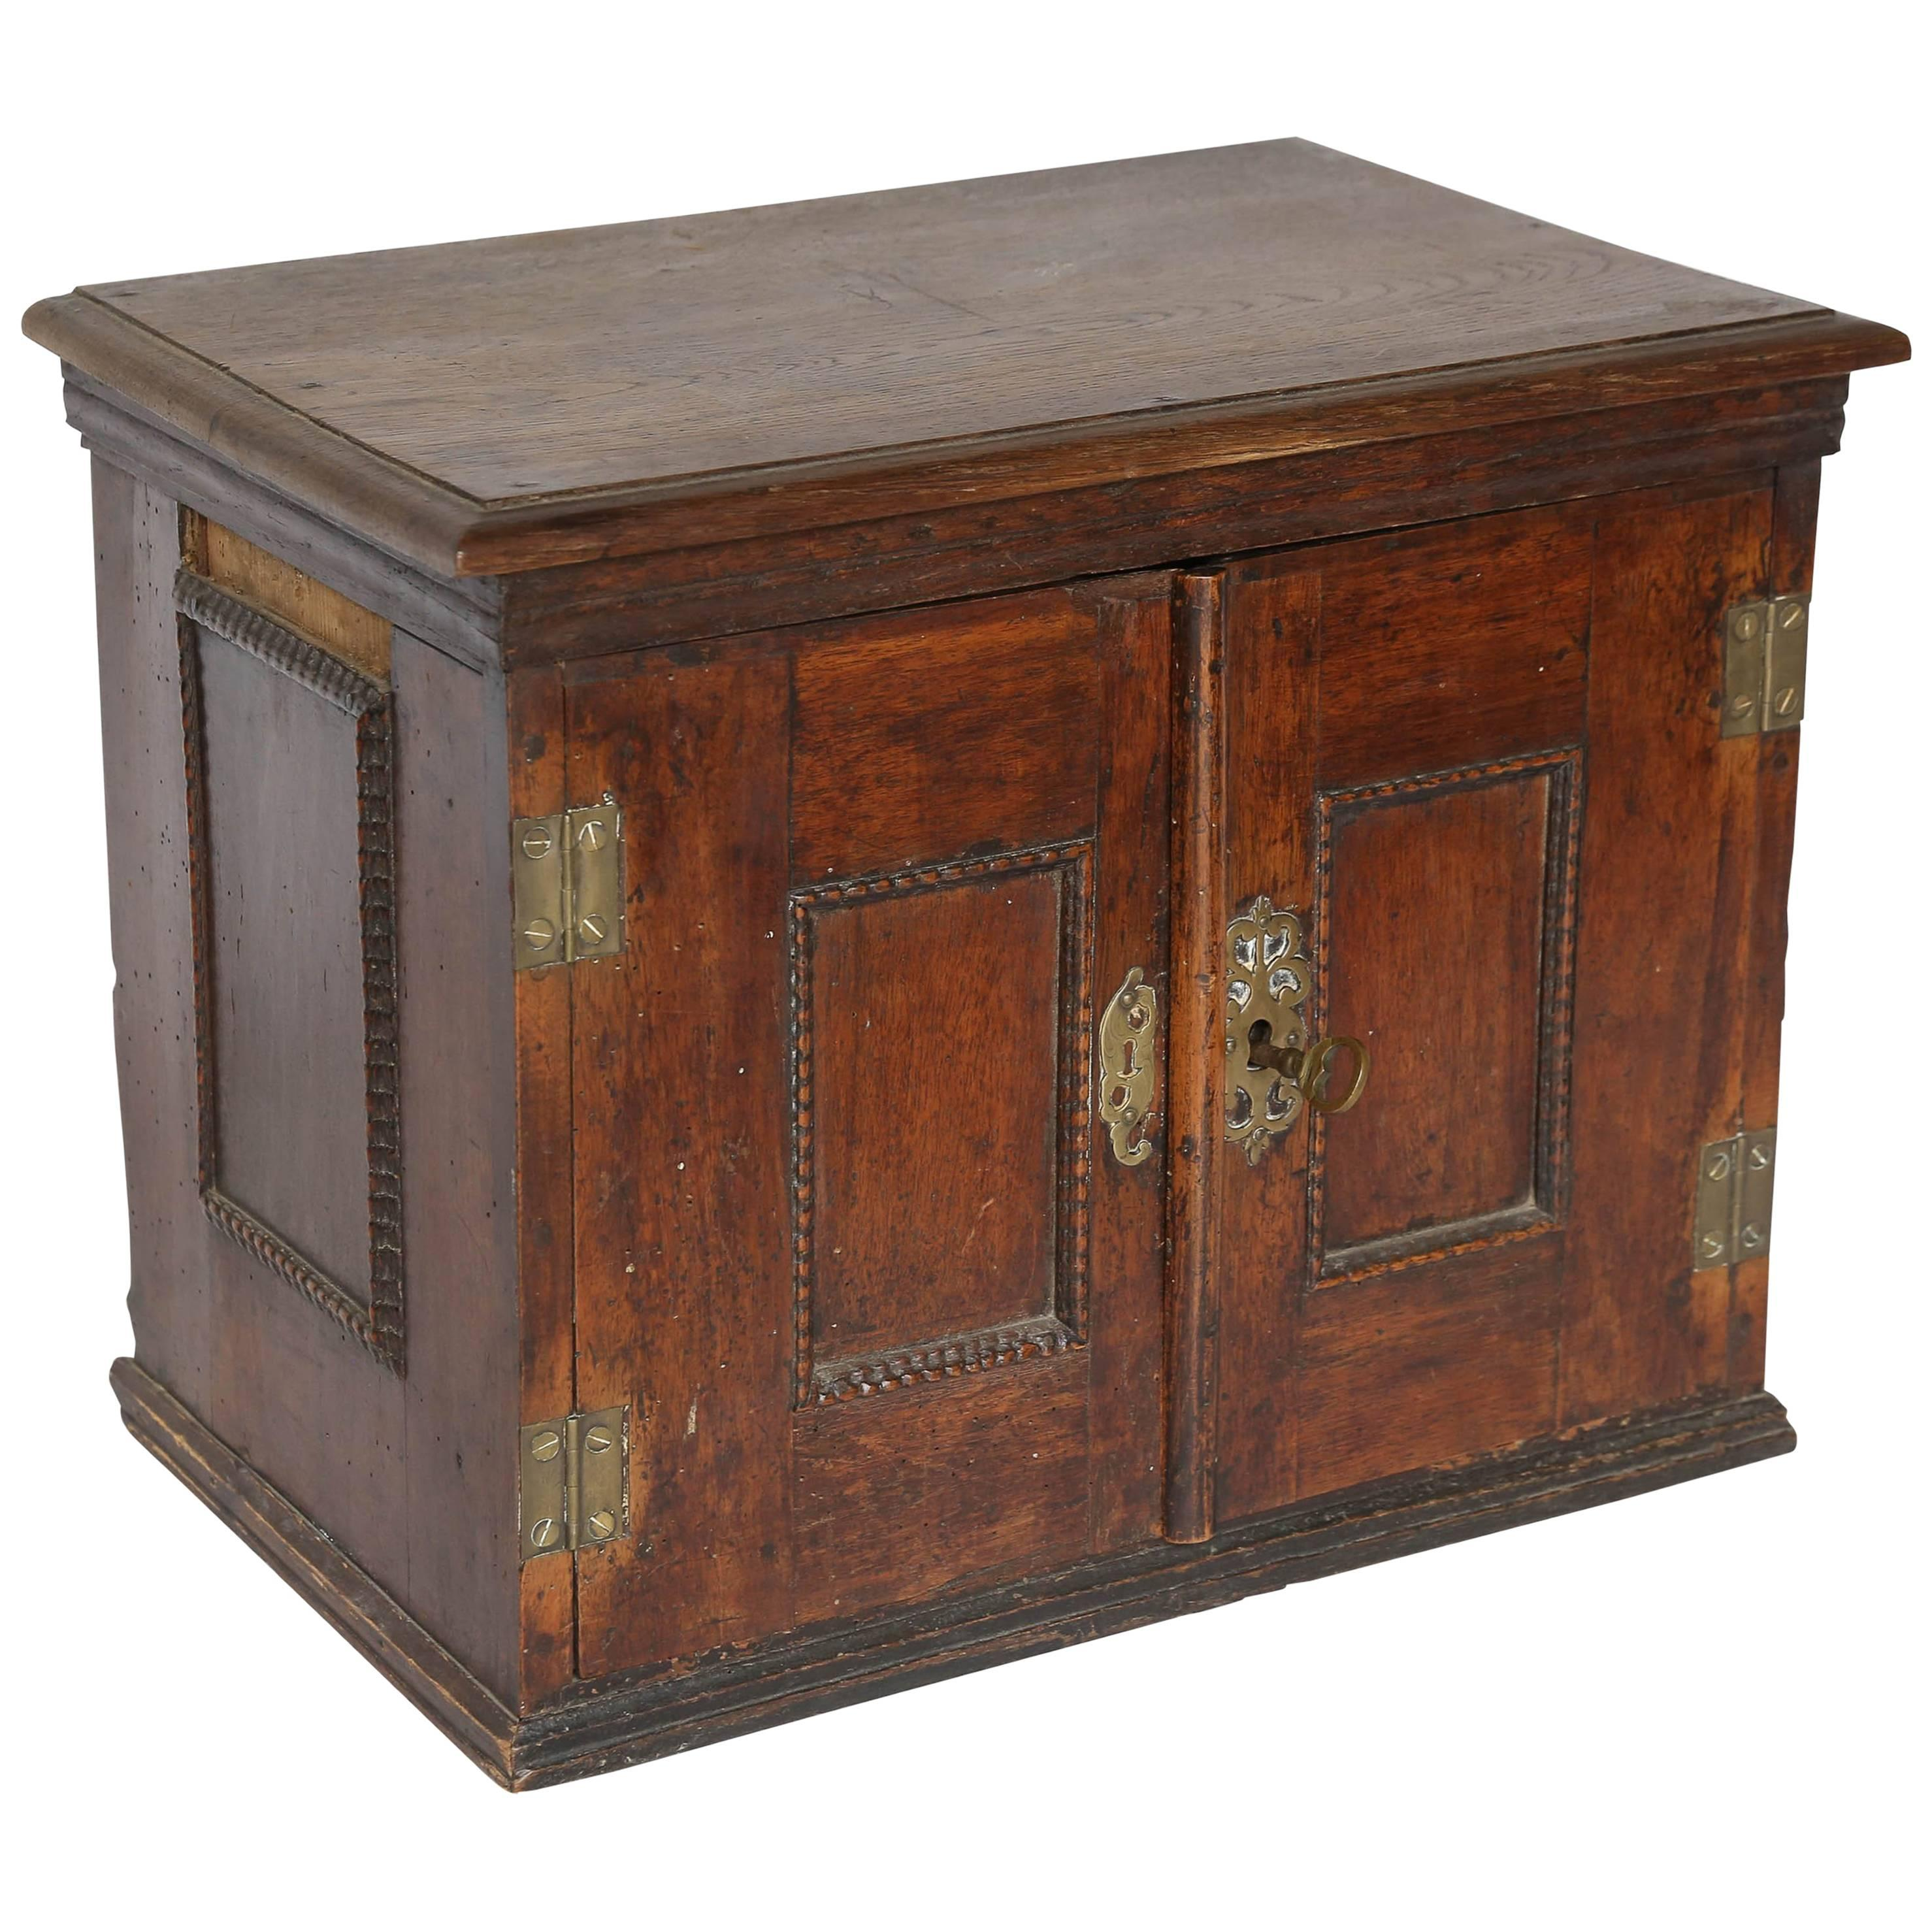 Antique French Jewelry Box For Sale at 1stdibs